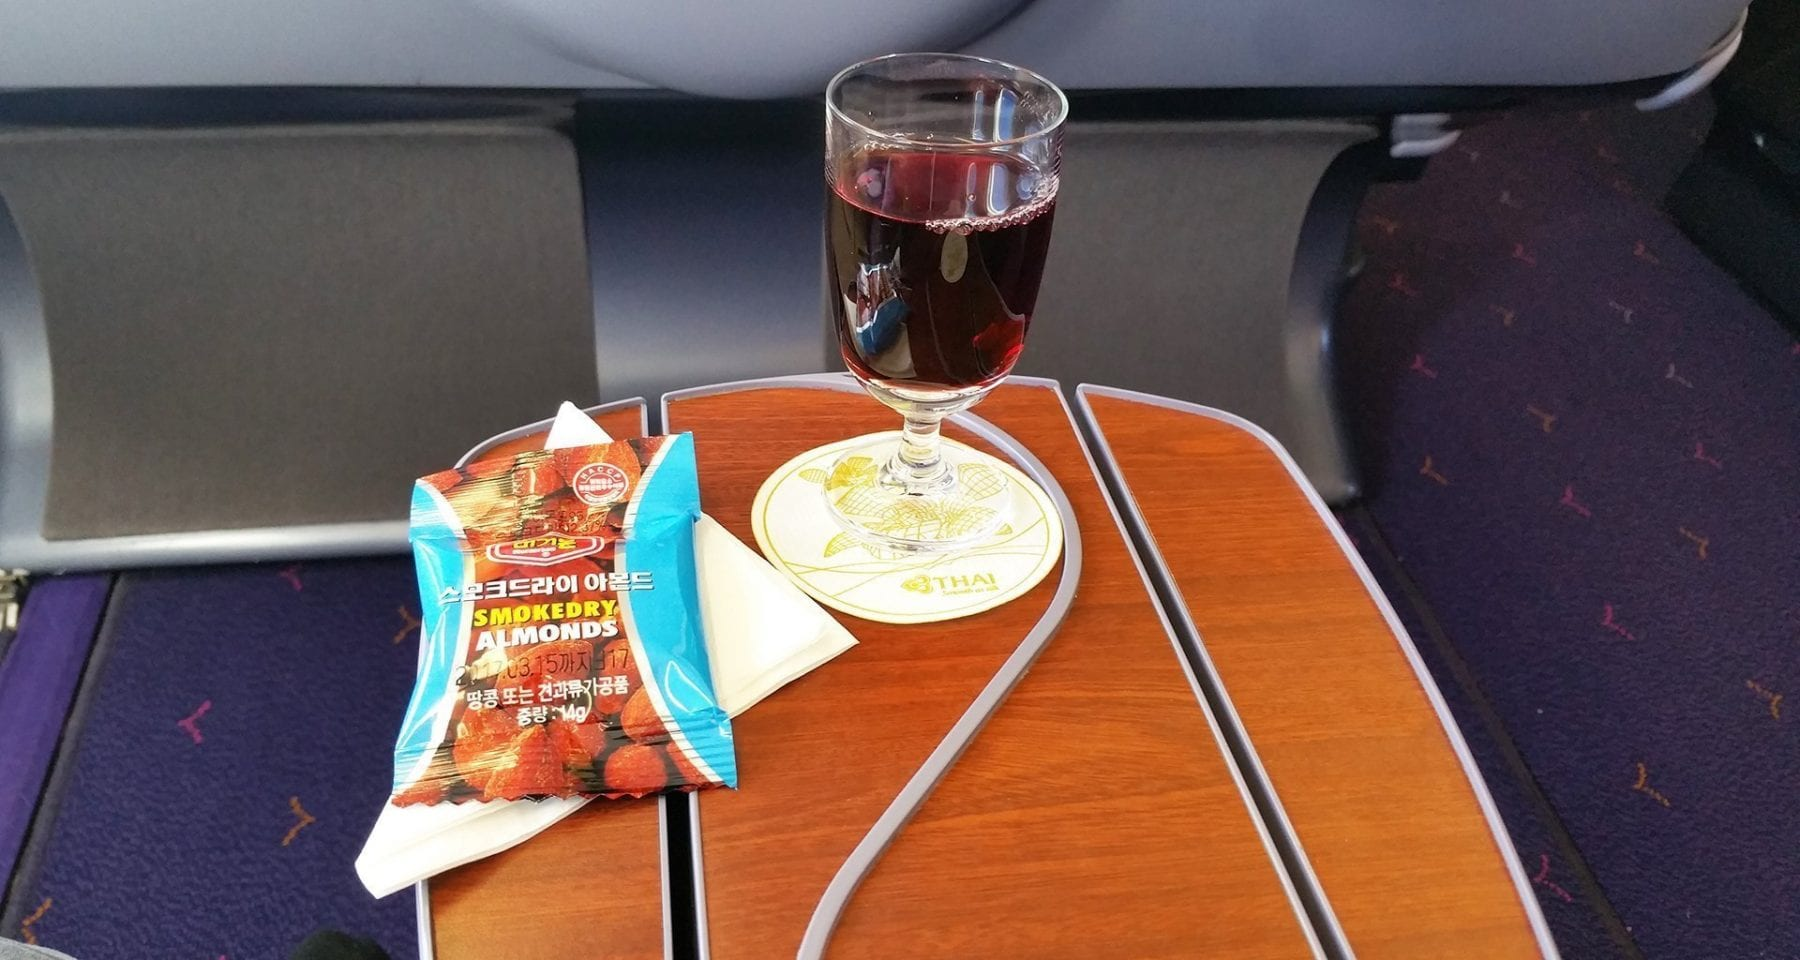 Thai Airways after take off drink and nuts